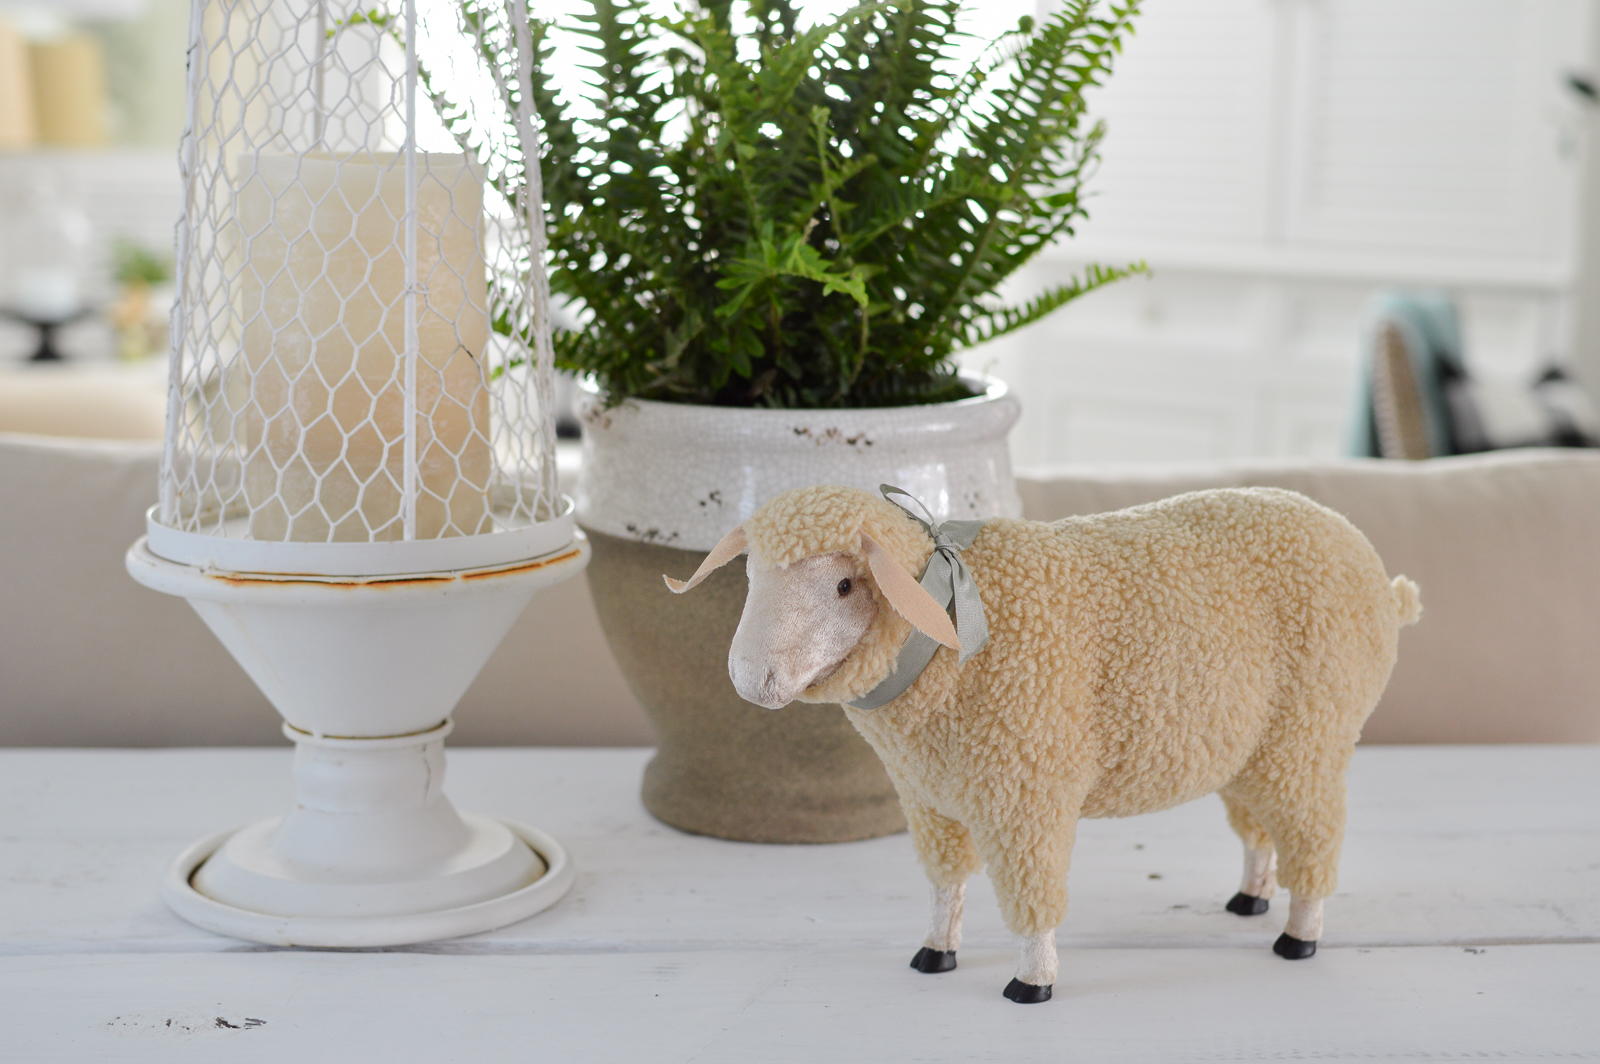 Casual Spring Decorating Cottage Living Room Tour | Fox Hollow Cottage - Ewegenia Mabel the woolly sheep.